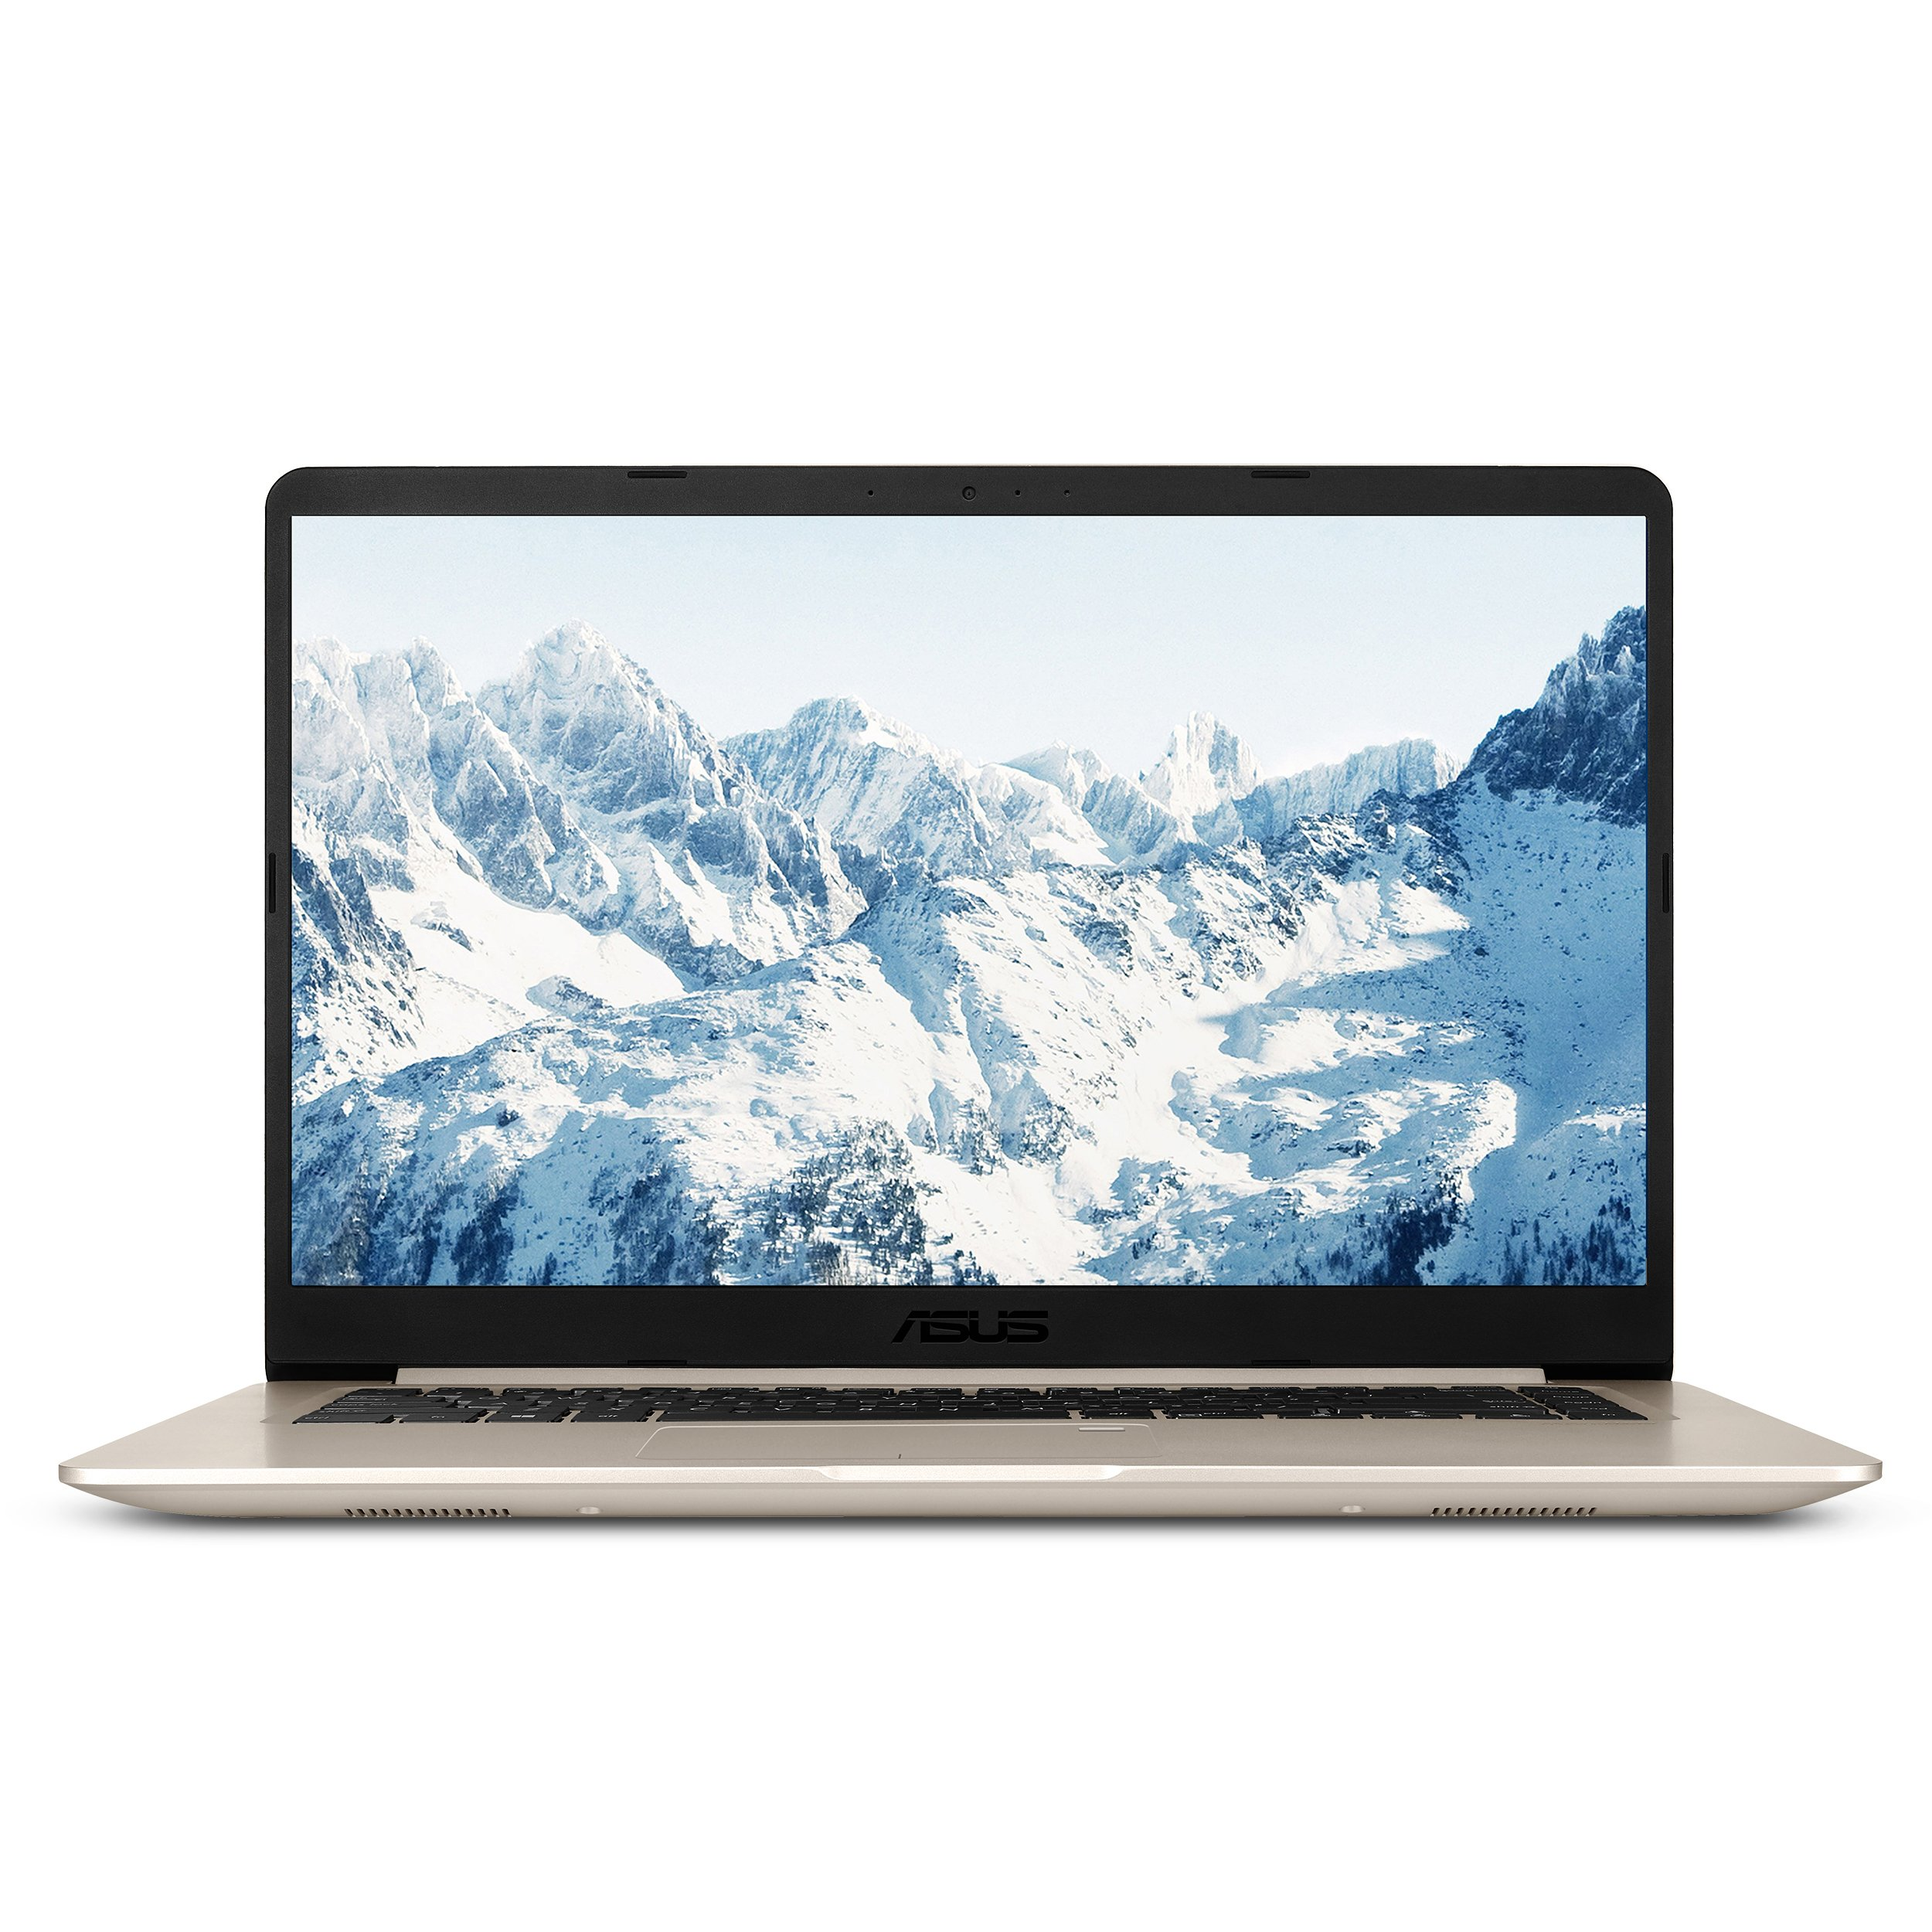 """ASUS VivoBook S Ultra Thin and Portable Laptop, Intel Core i7-8550U Processor, 8GB DDR4 RAM, 128GB SSD+1TB HDD, 15.6"""" FHD WideView Display, ASUS NanoEdge Bezel, S510UA-DS71 by ASUS (Image #1)"""